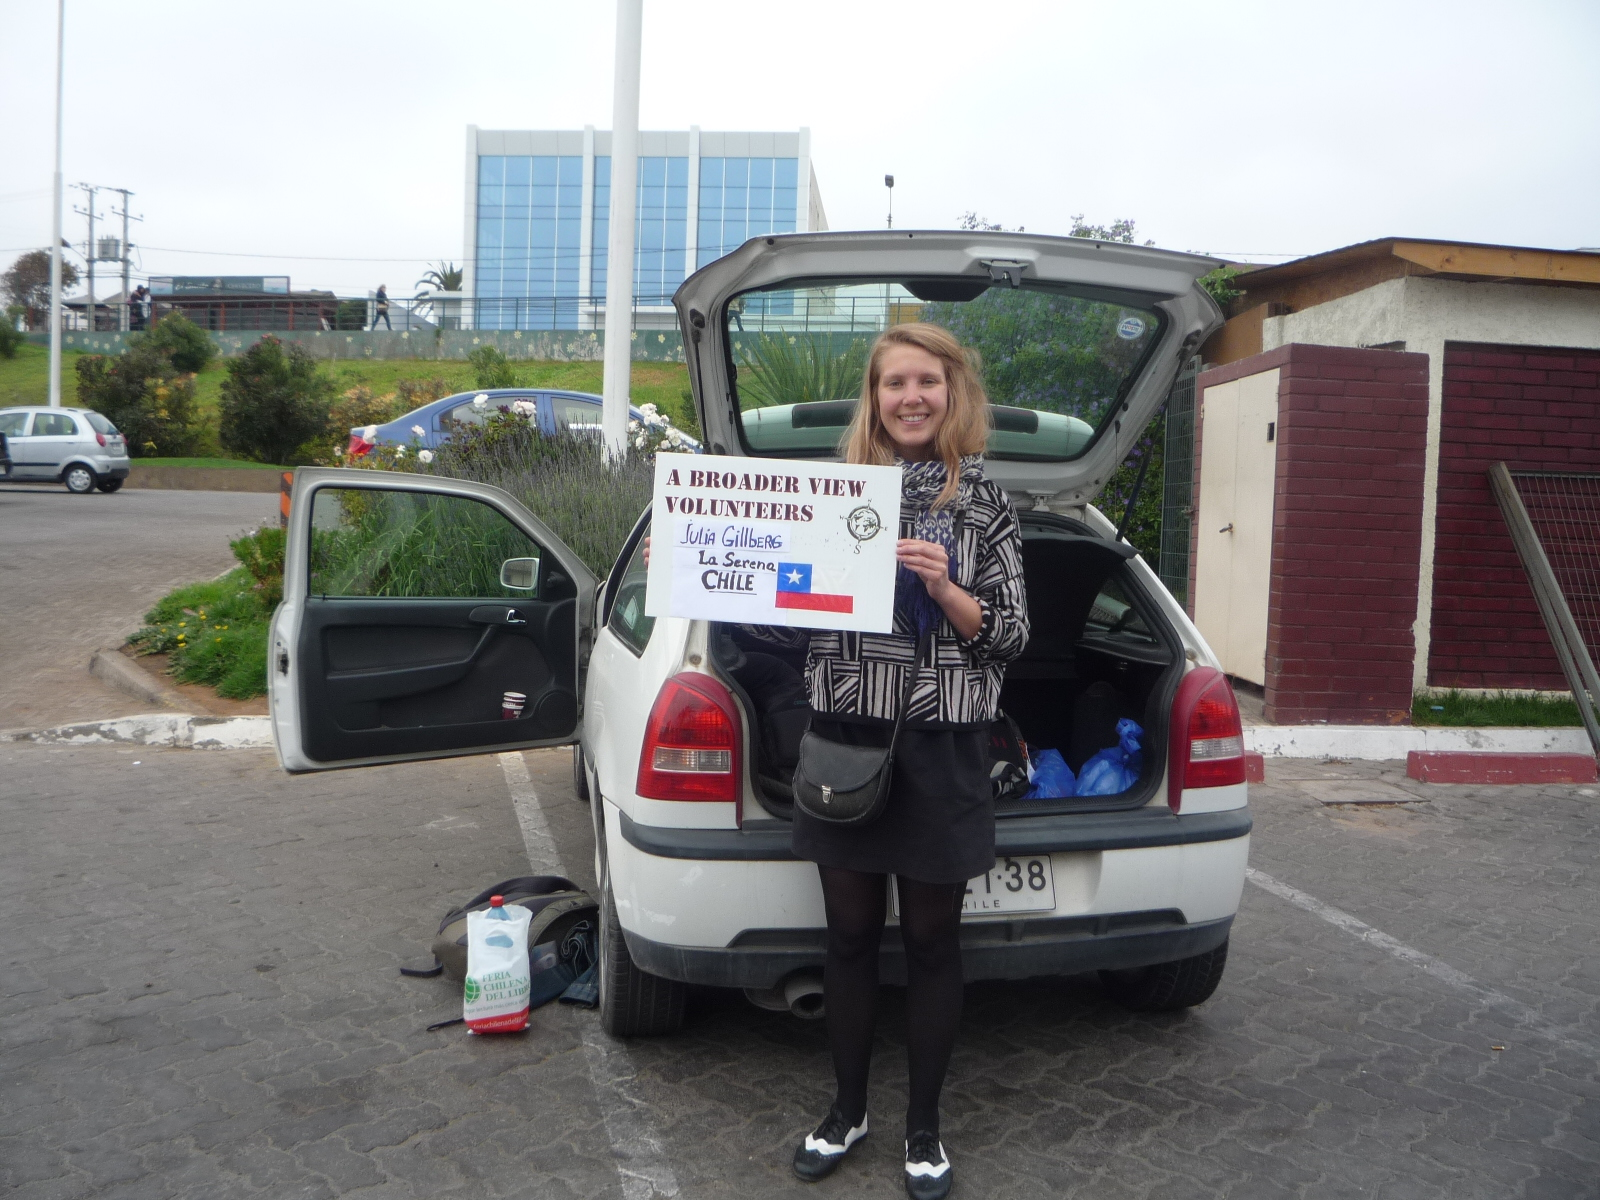 Gap Year Program - Volunteer Abroad in CHILE - Orphanage, Teaching, Elderly Care and Immersion with A Broader View Volunteers  4